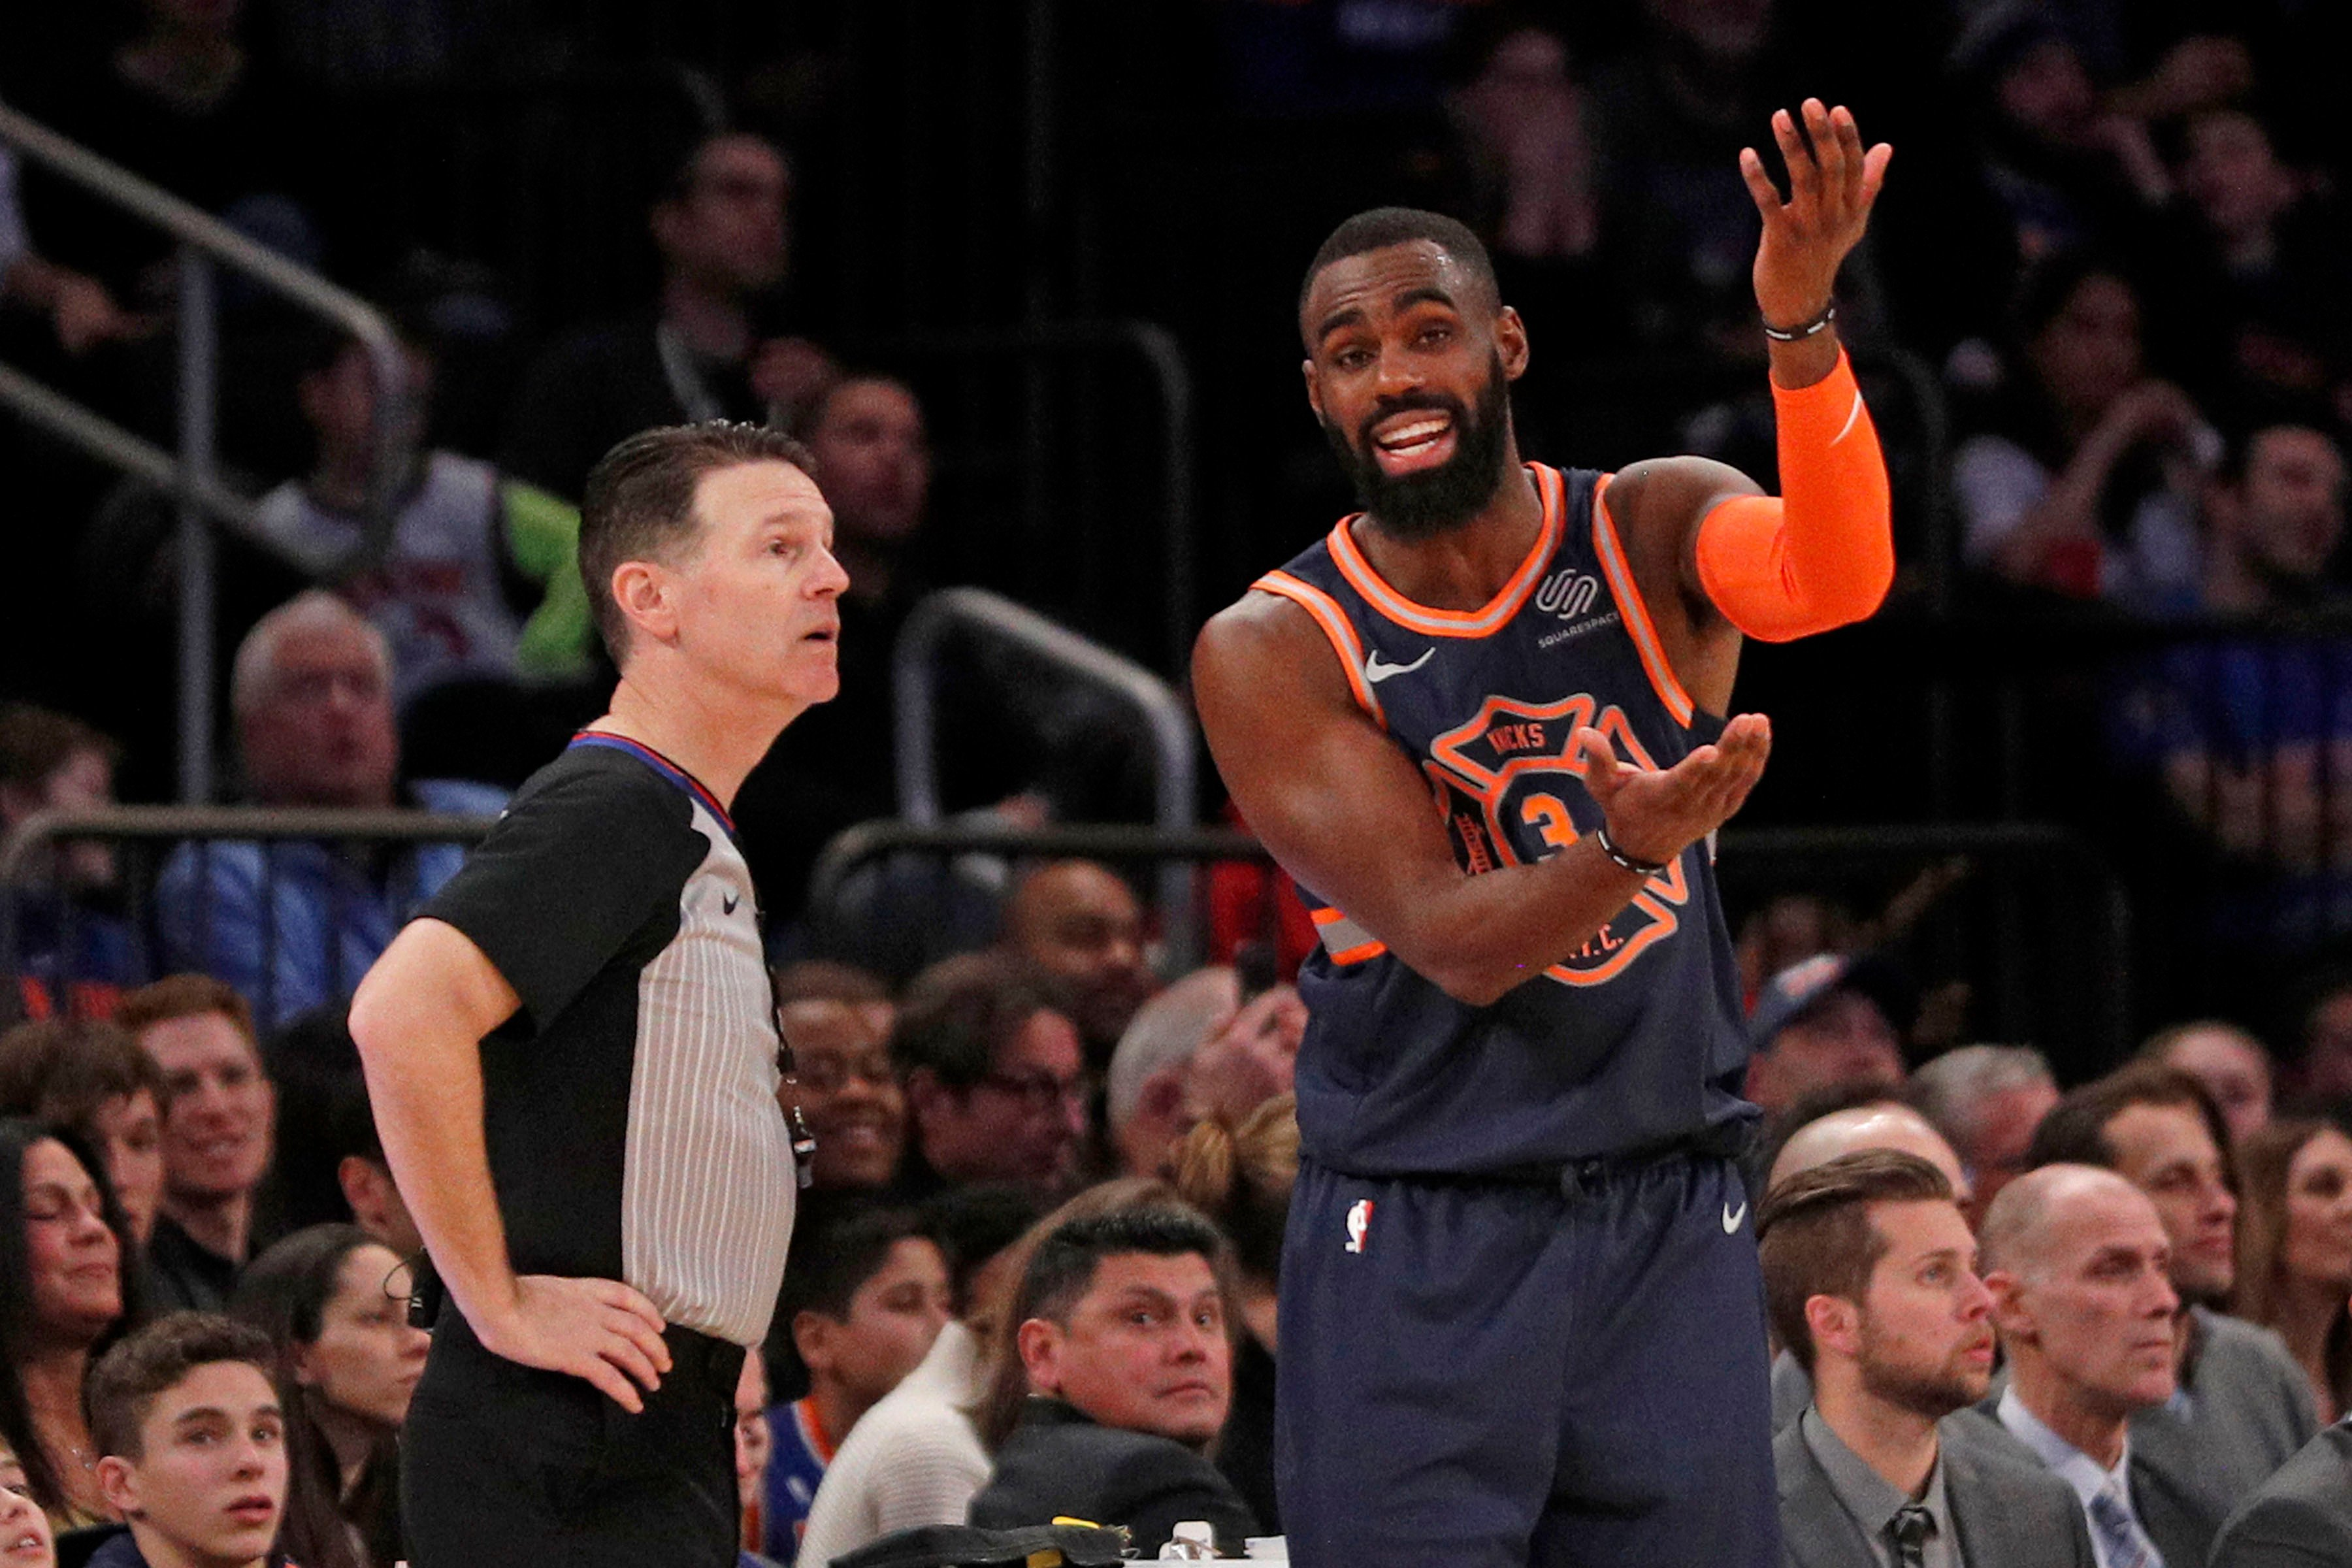 Refs scrubbed a play from history in bizarre Knicks shafting